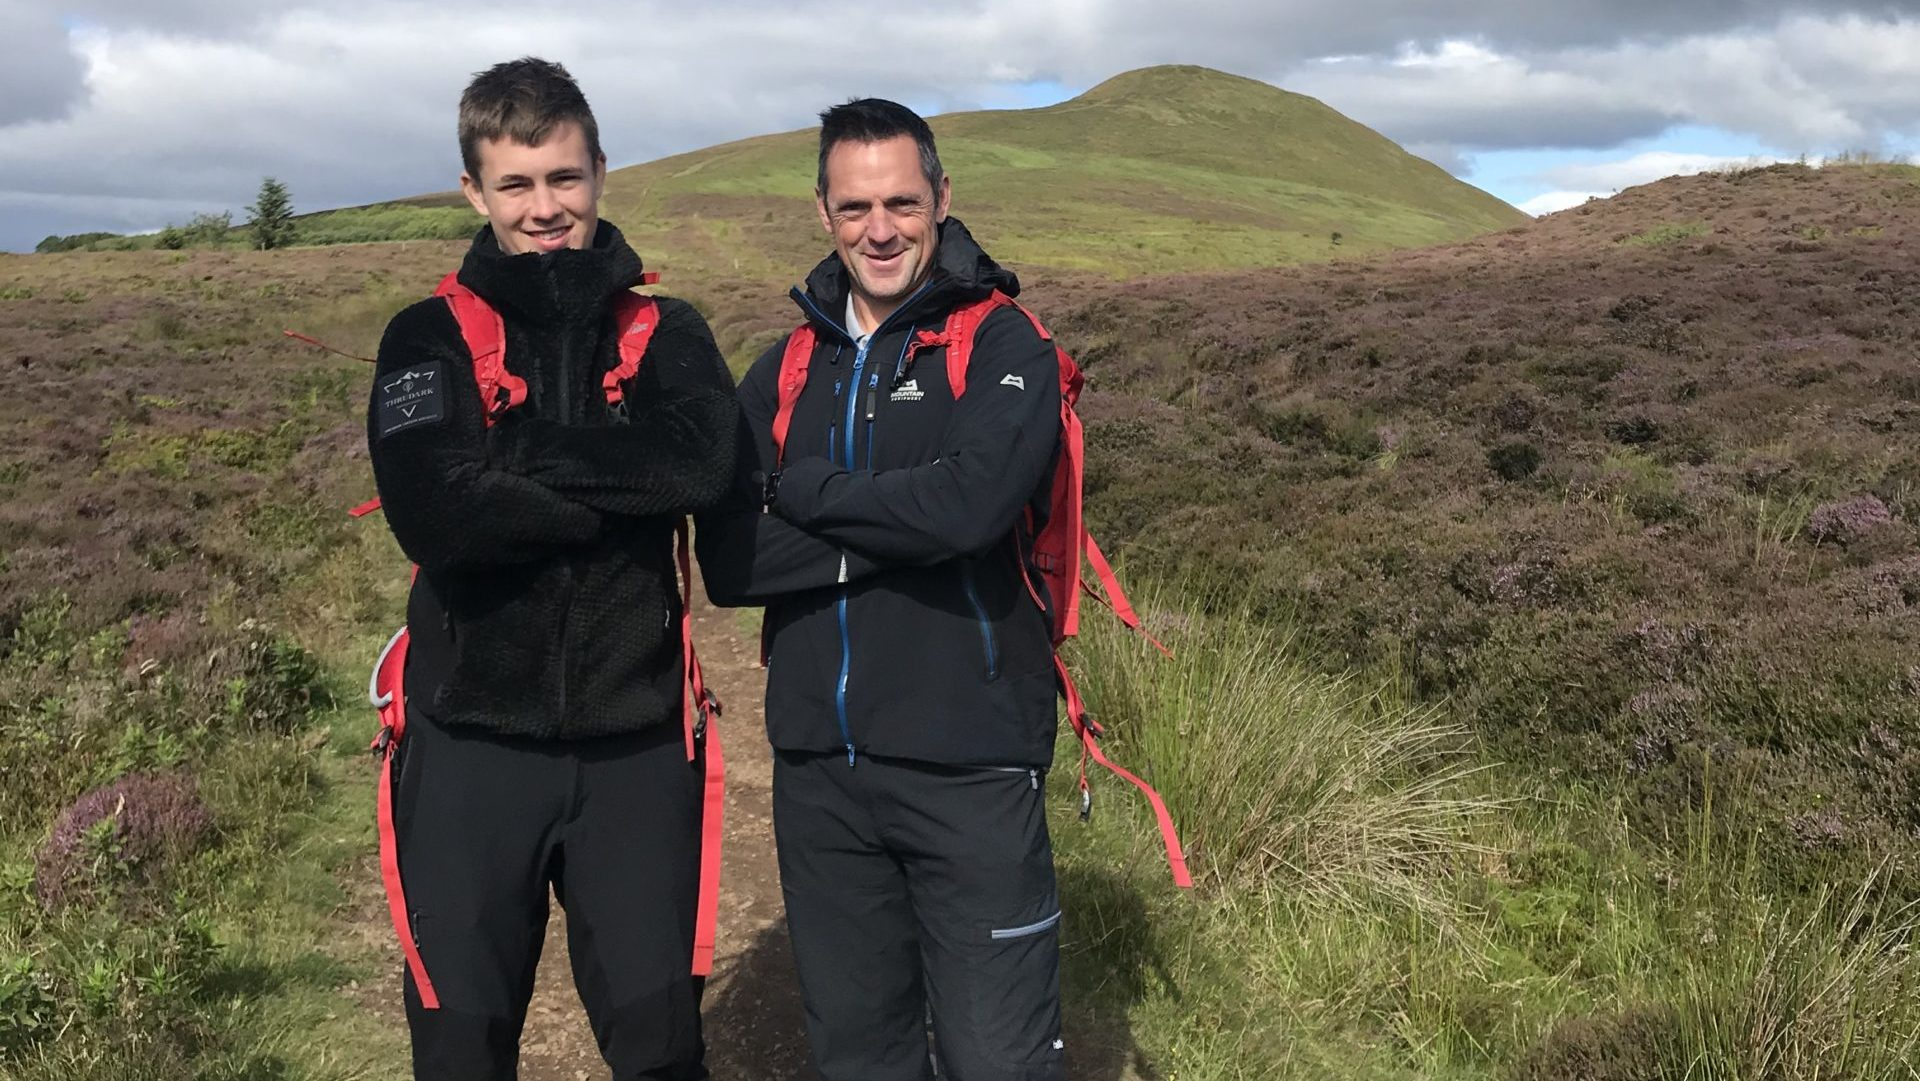 Ryan and Lee Powles during their training for the incredible challenge.